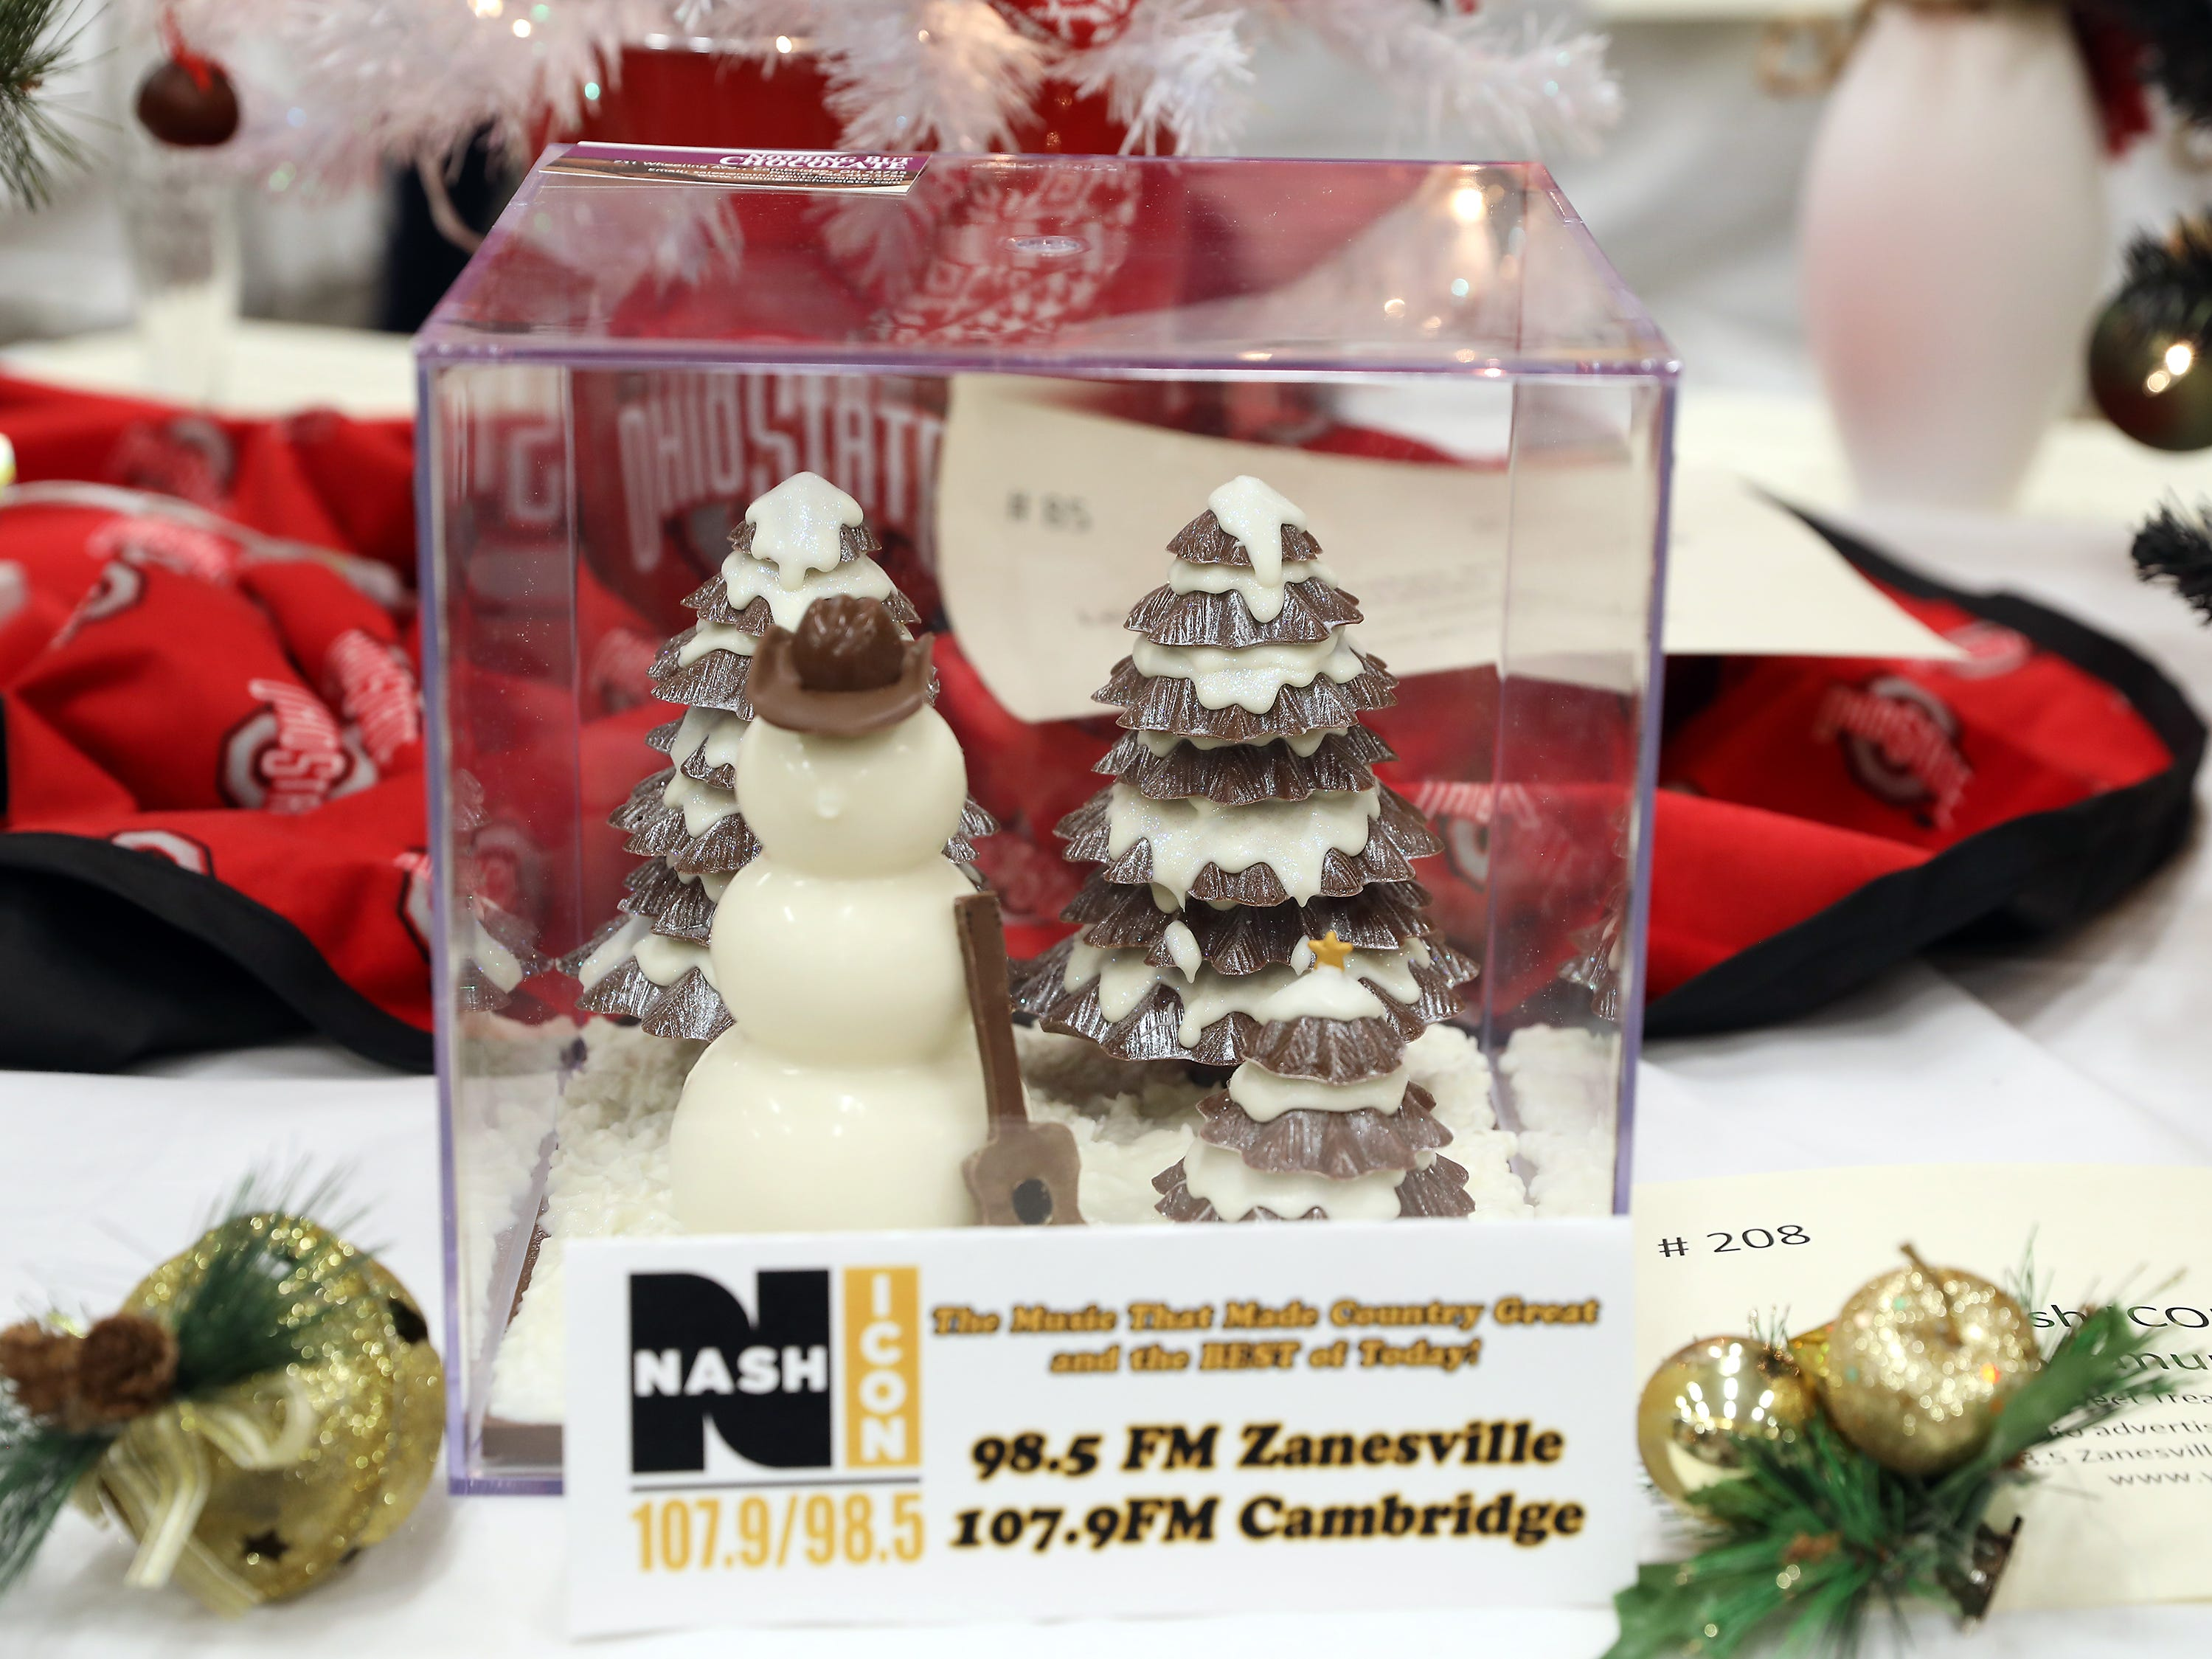 208	5:15 PM	Nash ICON / AVC Communications	Centerpiece	A Sweet Treat for the Holidays!	This jolly chocolate snowman will turn any holiday party into a sweet treat for your sweetest.		Radio advertising package for Nash ICOn 107.9 Cambridge, 98.5 Zanesville.  48 Radio spots and Banner Ad on www.yourradioplace.com